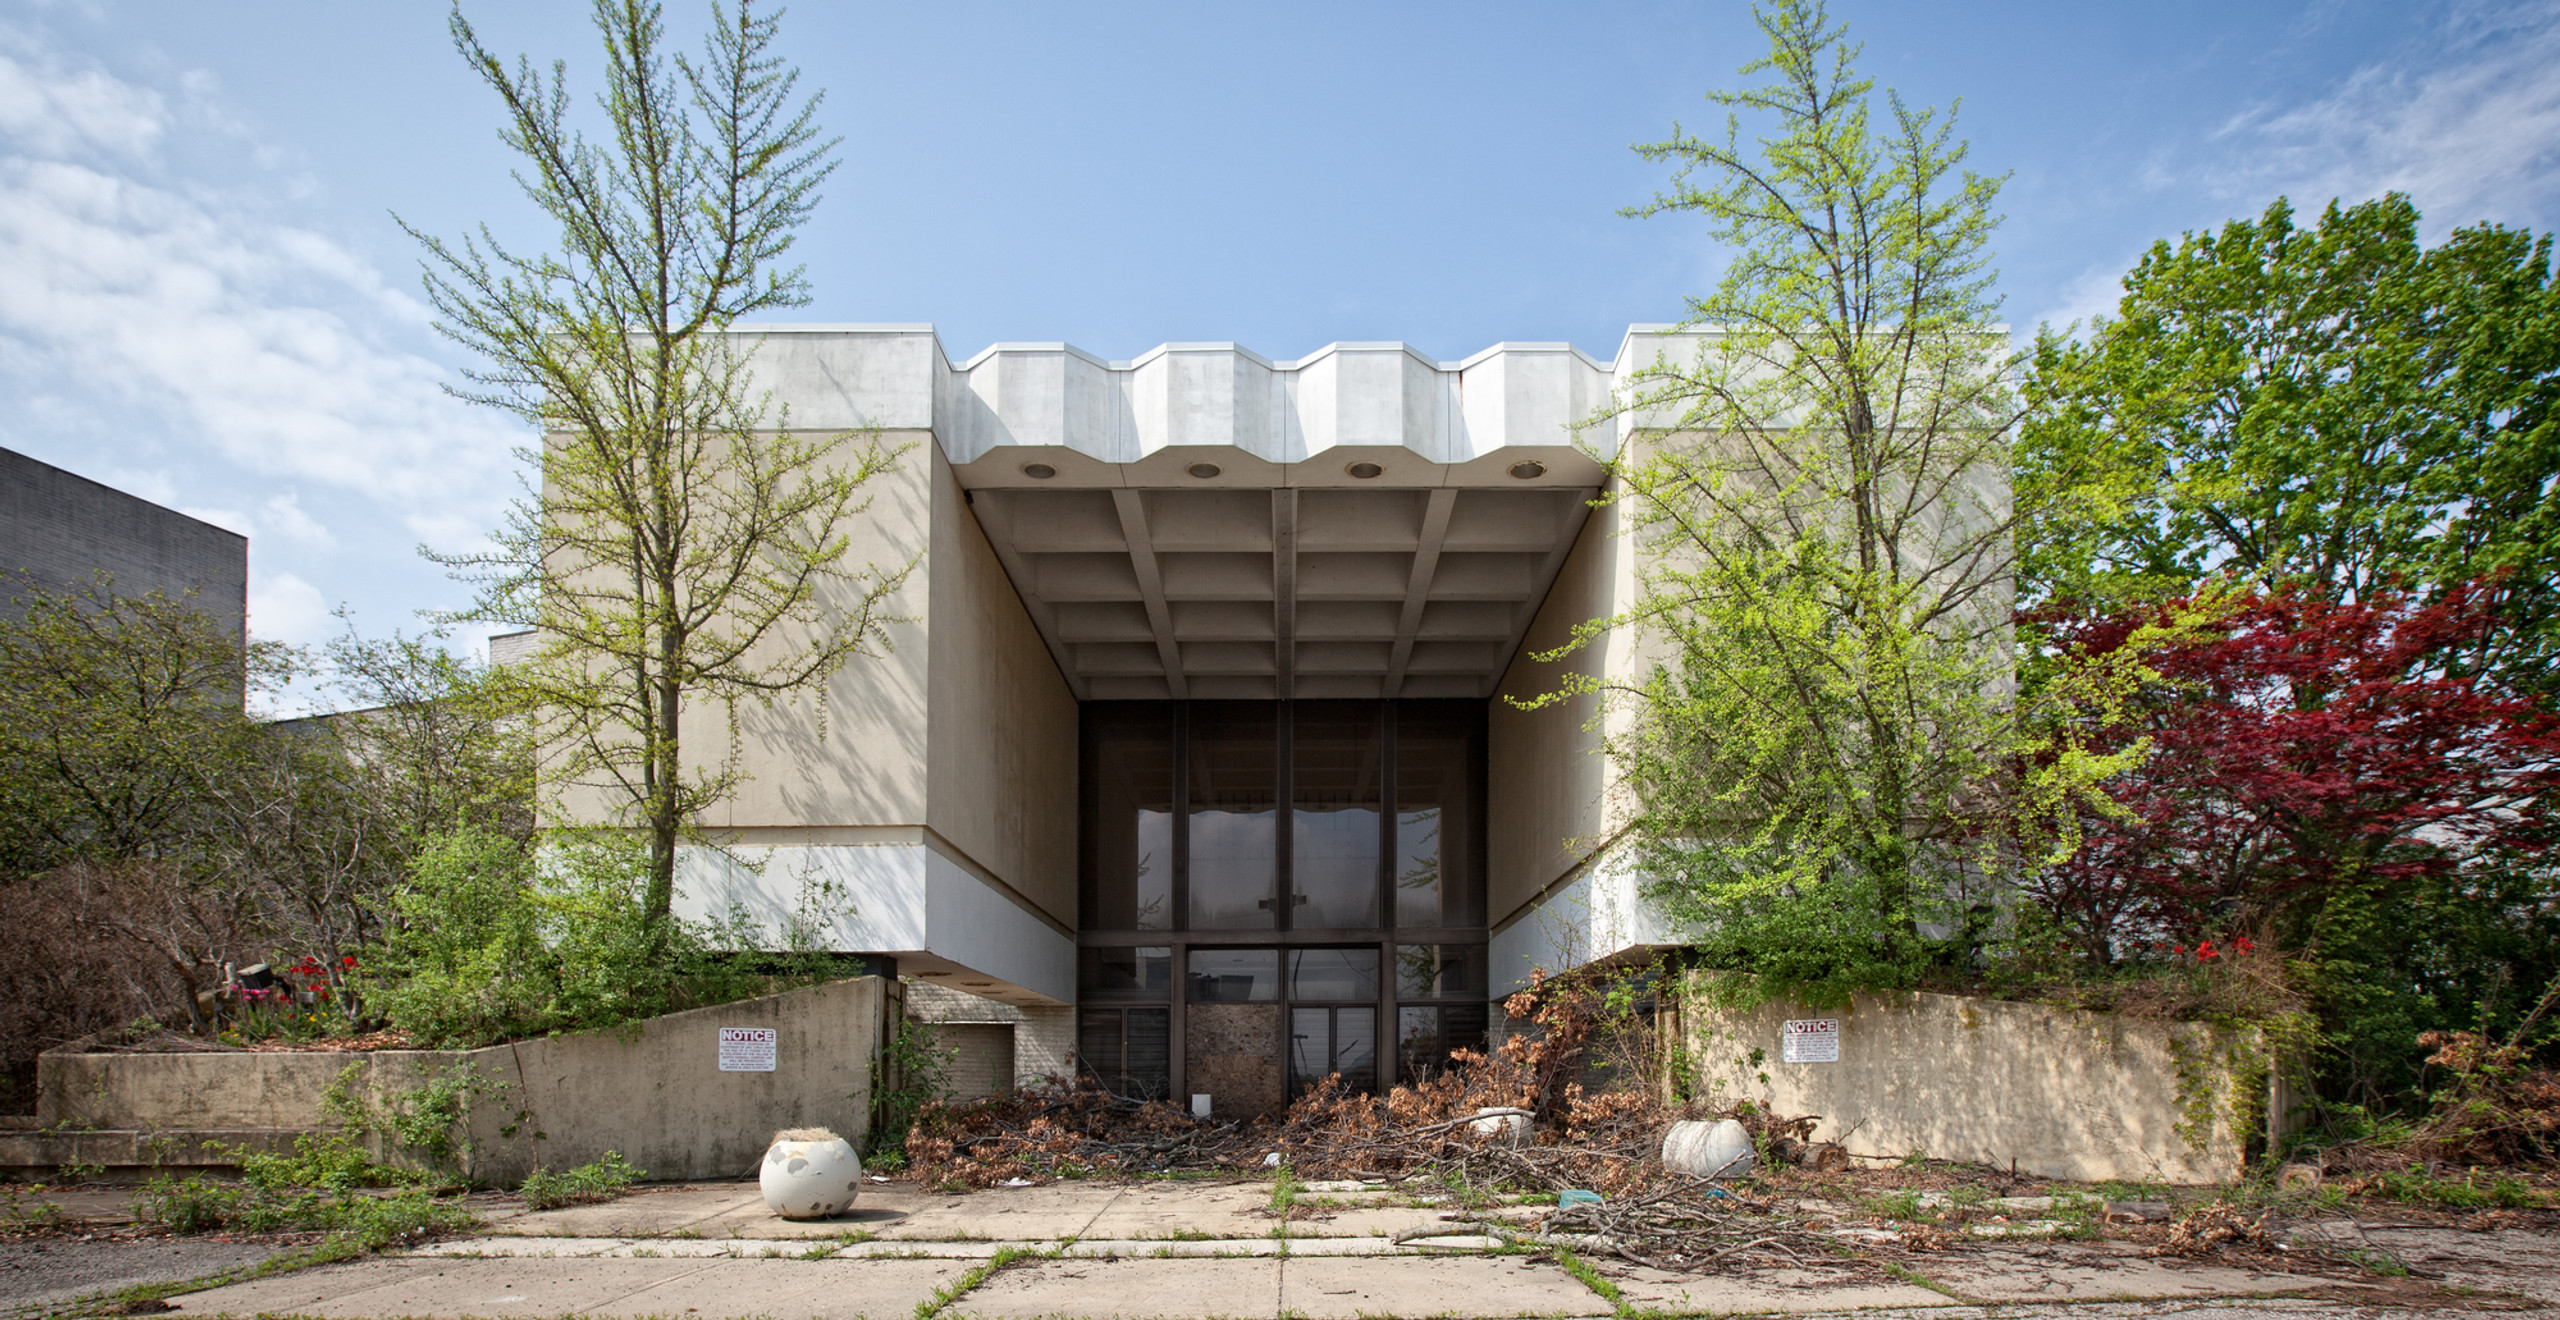 An overgrown entrance to Randall Park Mall